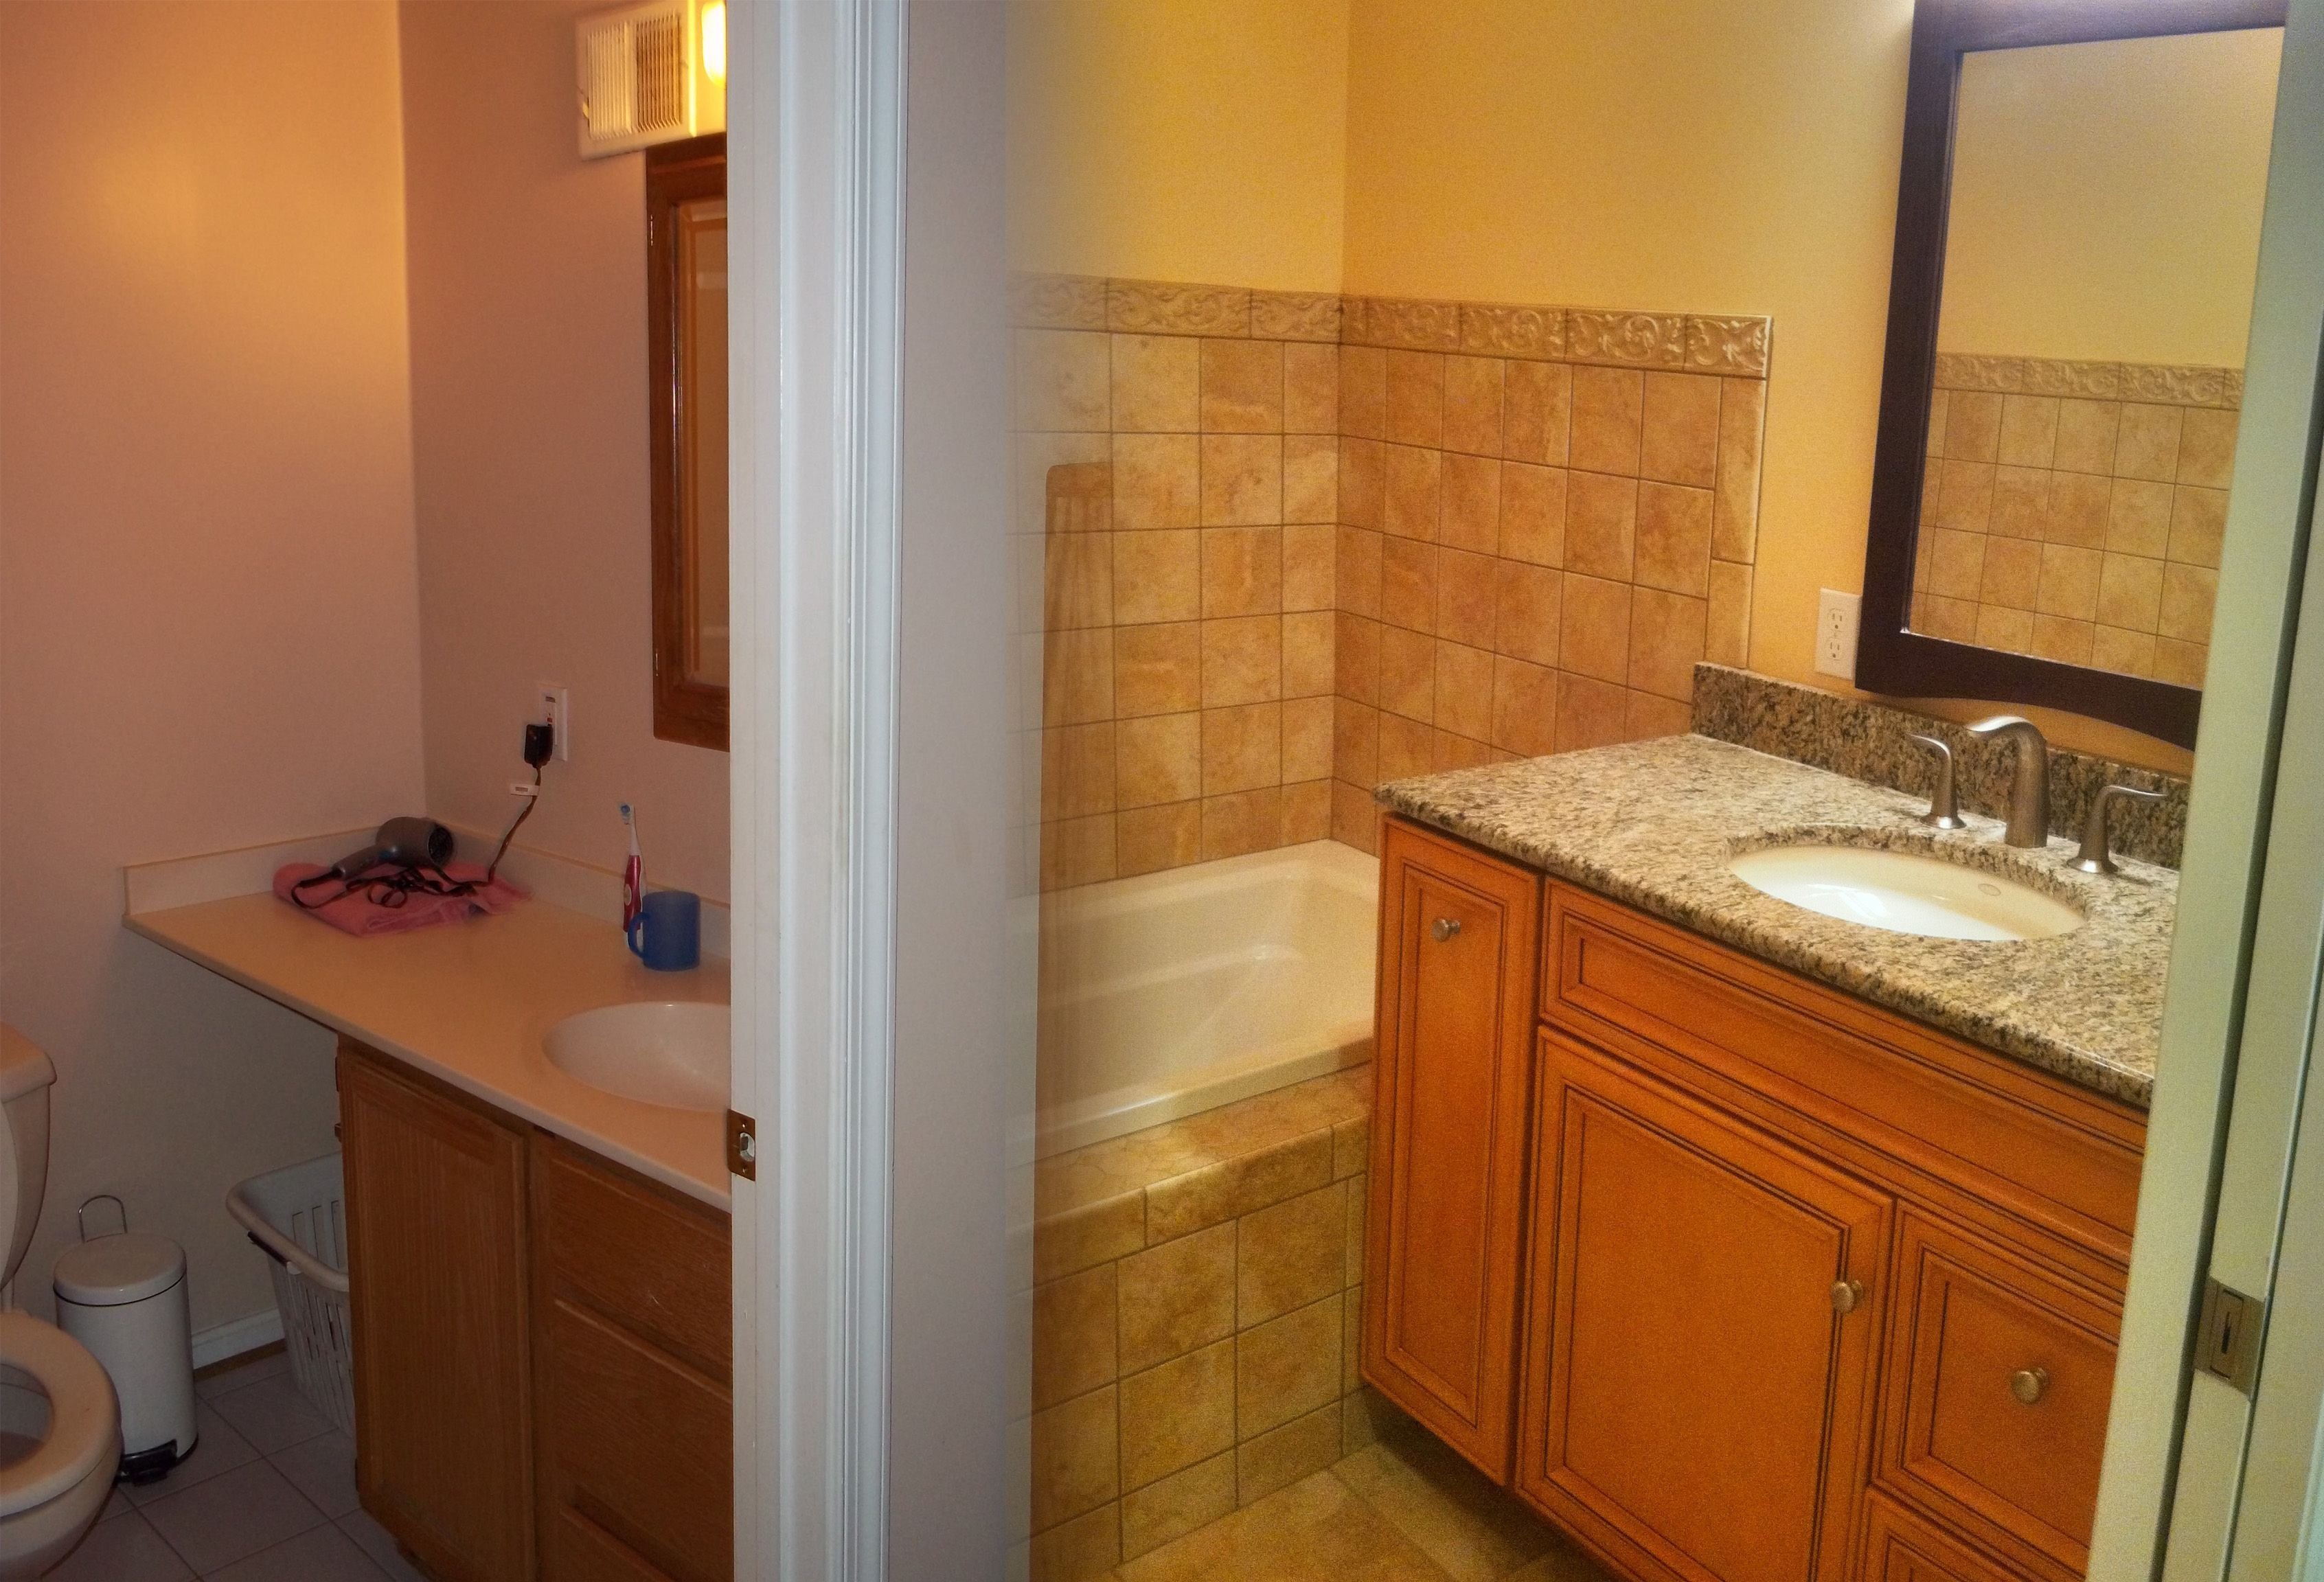 Bathroom Remodel Ideas Before And After 1960S Bathroom Renovation Before And After . & Bathroom